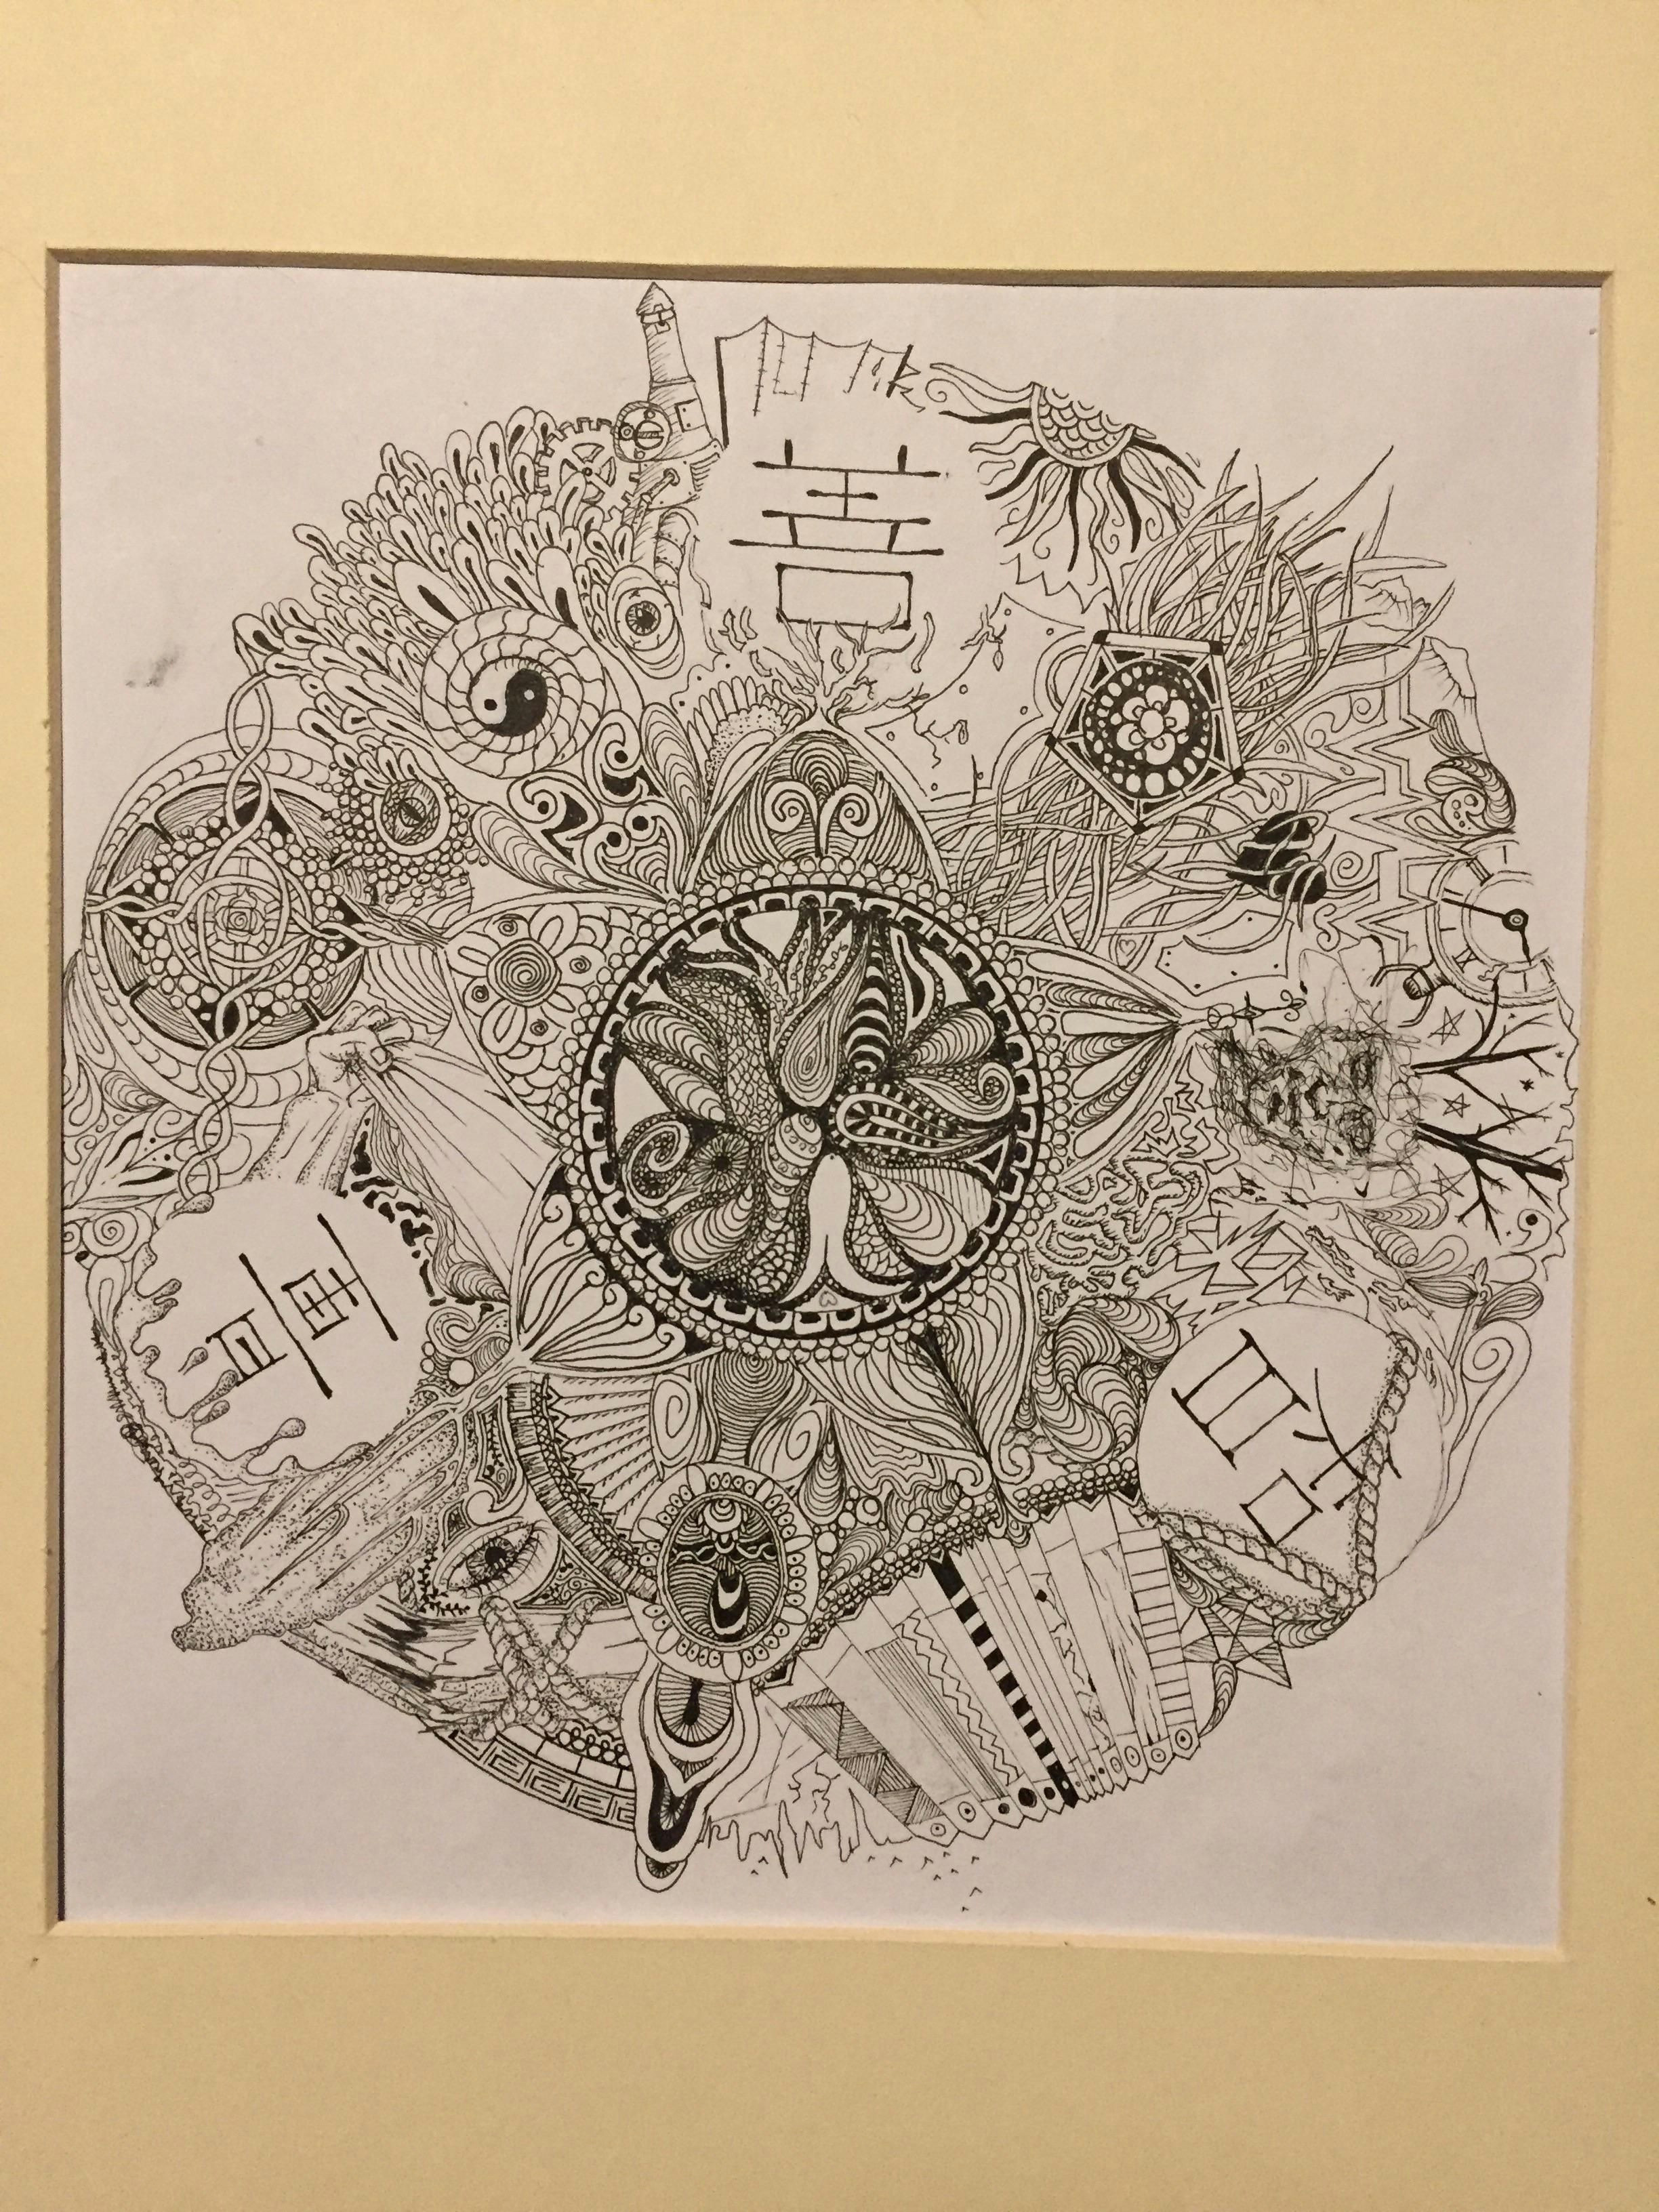 this is my first reddit post its a mandala in pen and ink